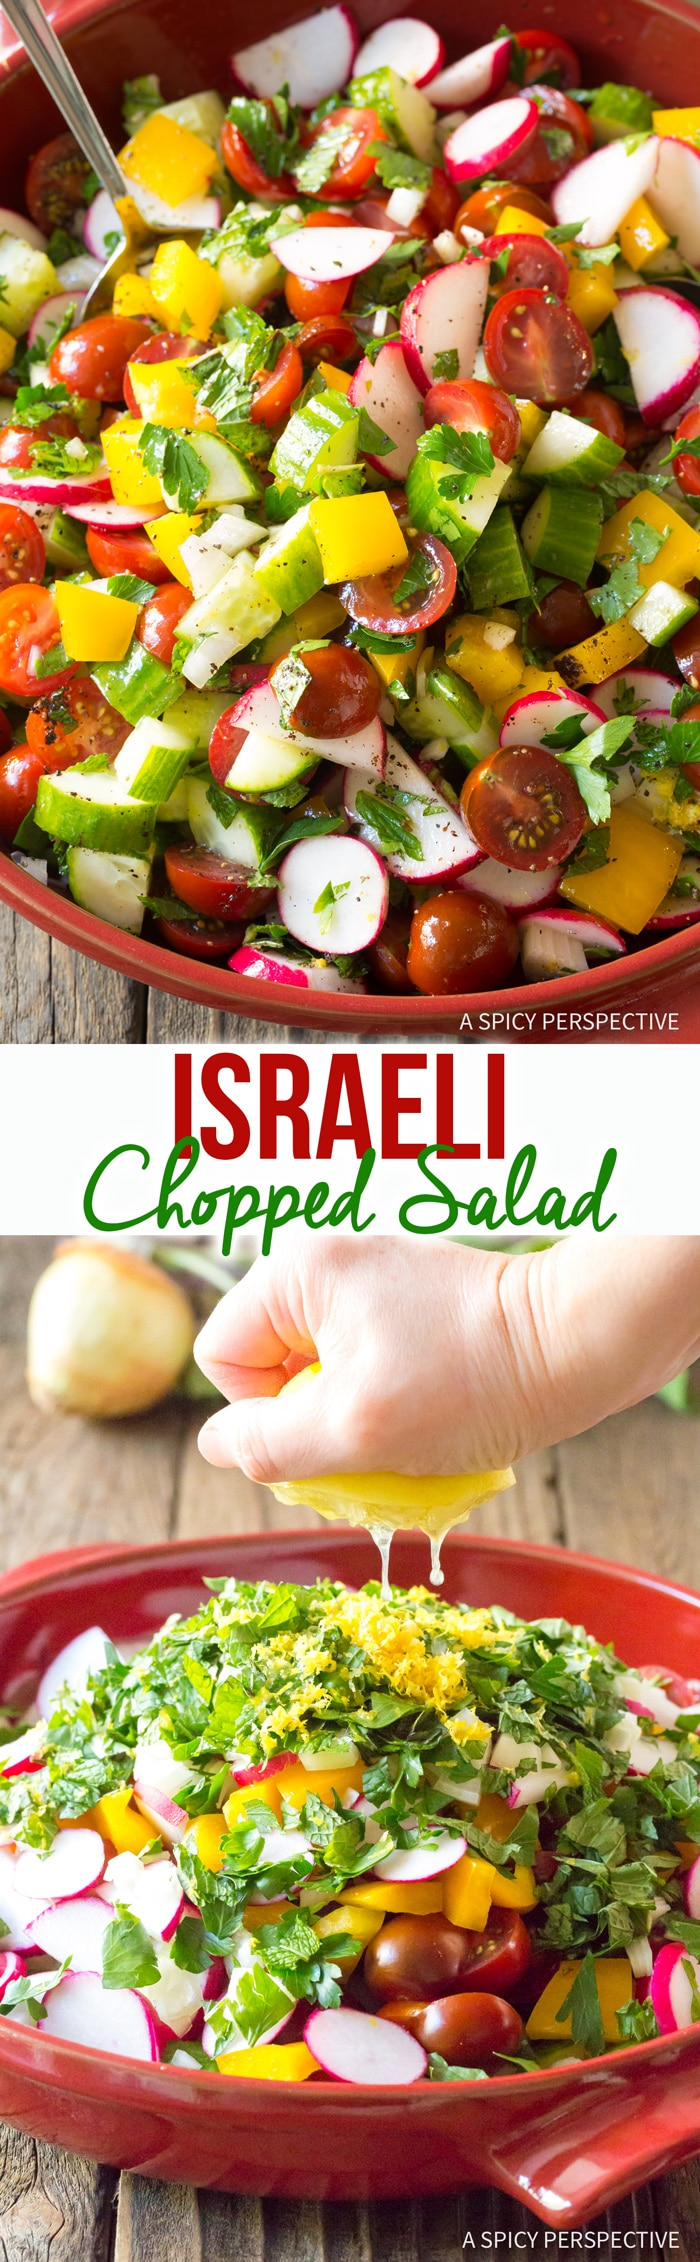 Vibrant Chopped Israeli Salad with Lemon Vinaigrette Recipe #LowCarb #GlutenFree & #Vegan